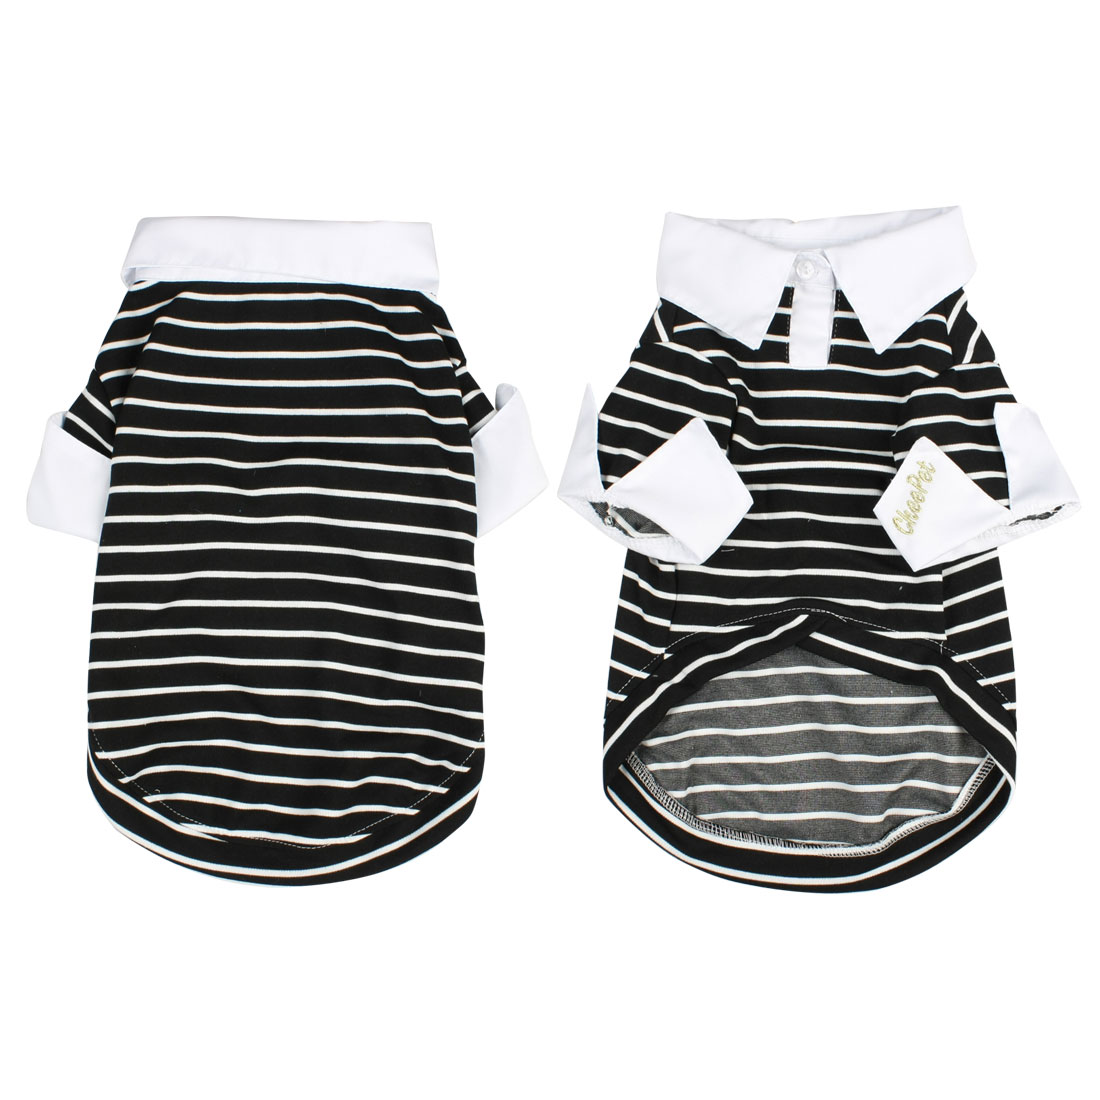 Pointed Collar Striped Shih Tzu Dog Clothes Pet Doggie Shirt Top Black L